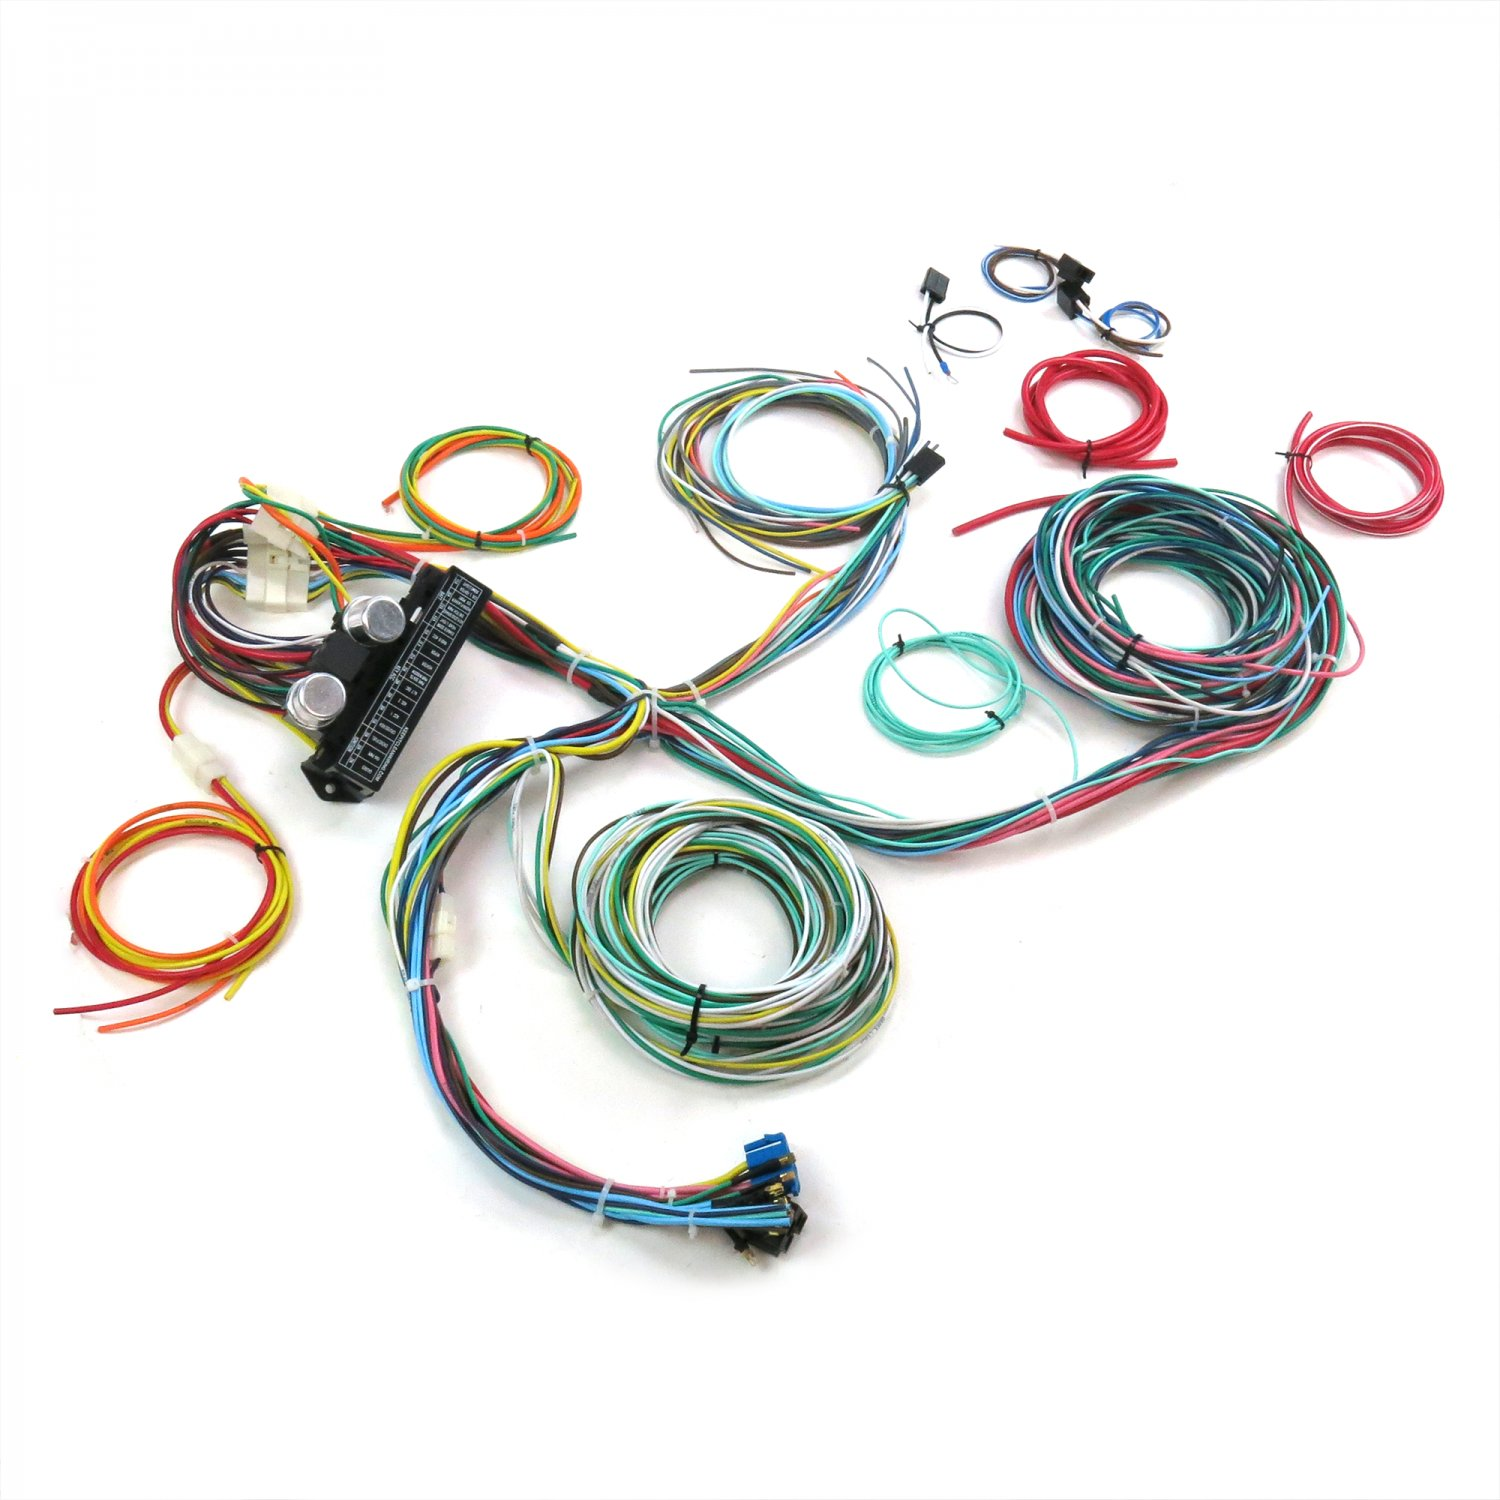 auto wire harness re wiring kit for any 67 72 chevy truck Painless Wiring Harness Chevy 67-72 chevy truck wiring harness